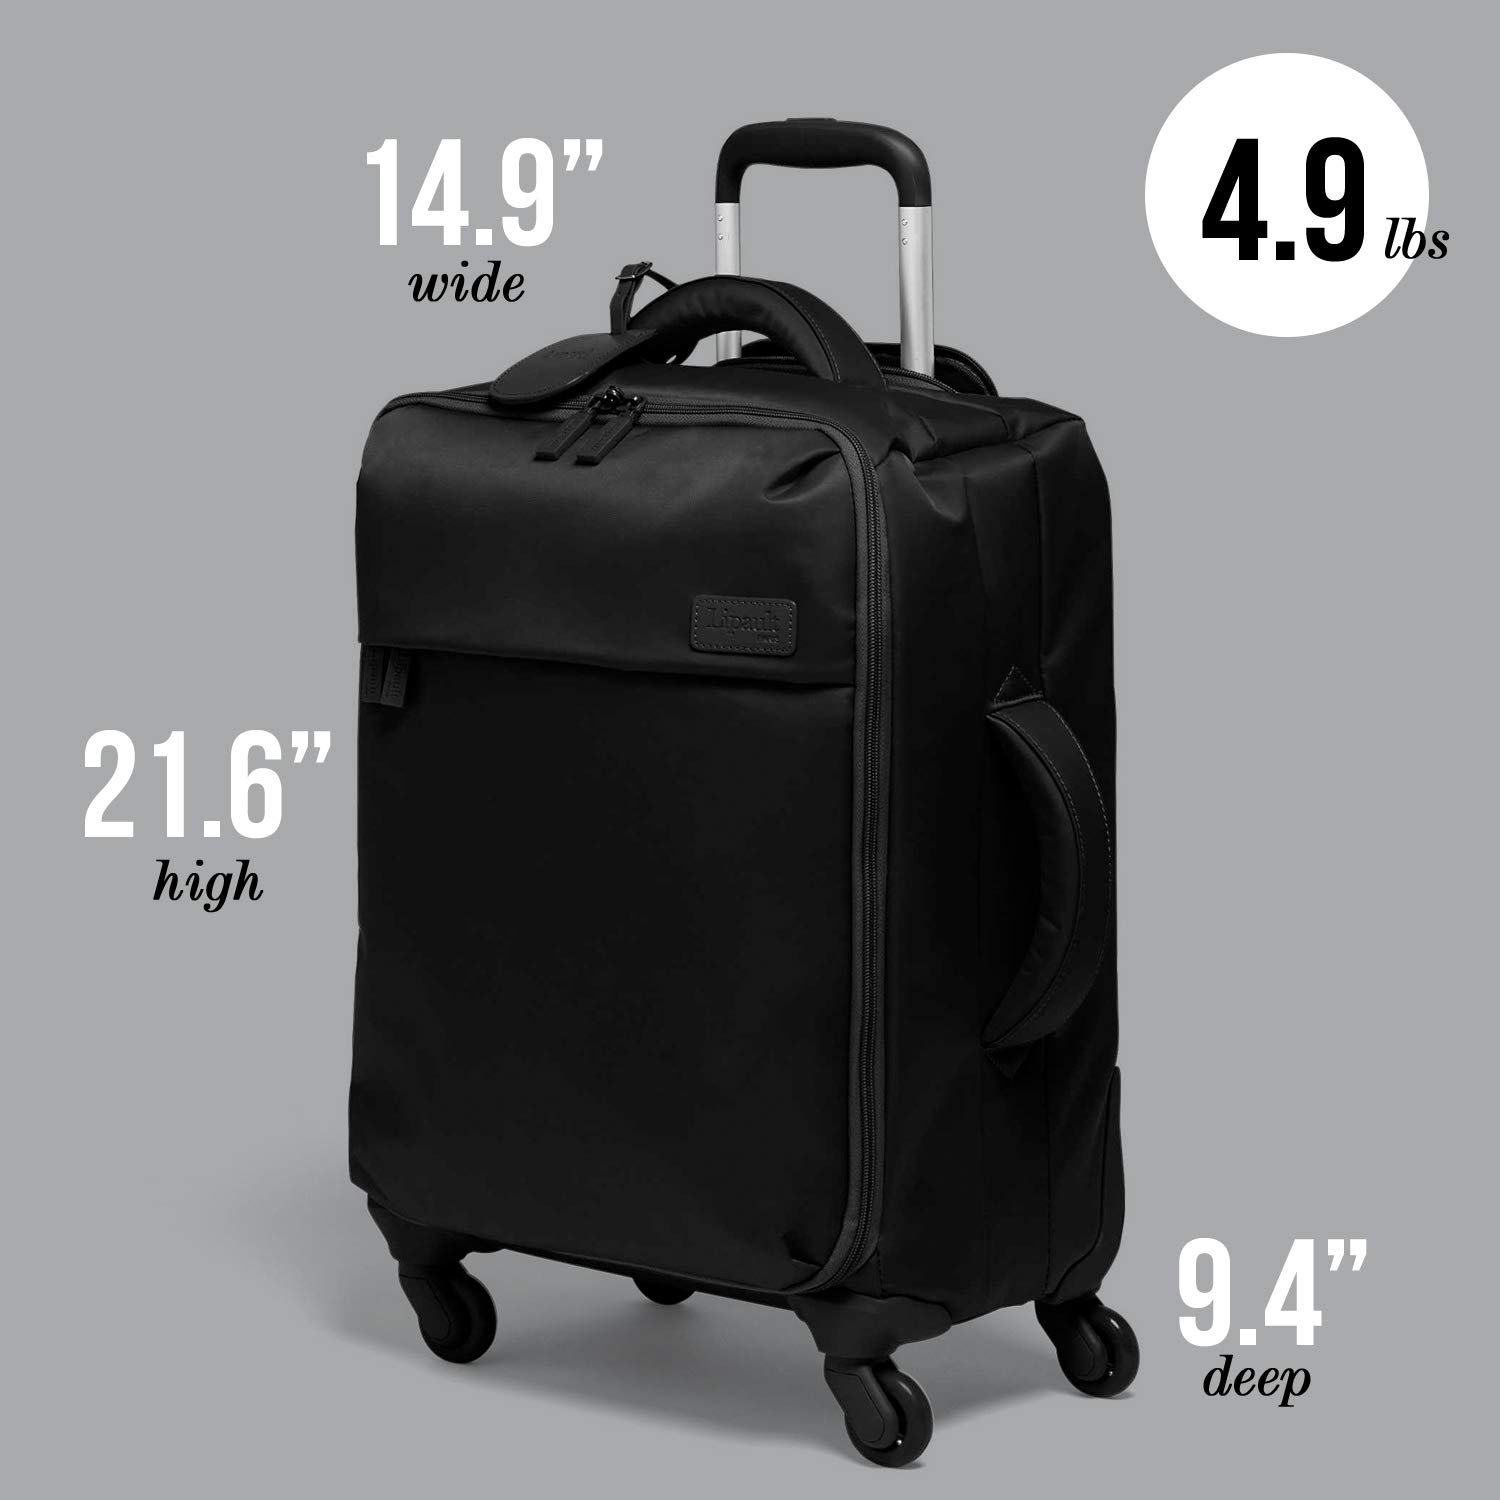 b37e4ac17 Amazon.com | Lipault - Original Plume Spinner 55/20 Luggage - Carry-On  Rolling Bag for Women - Black | Carry-Ons